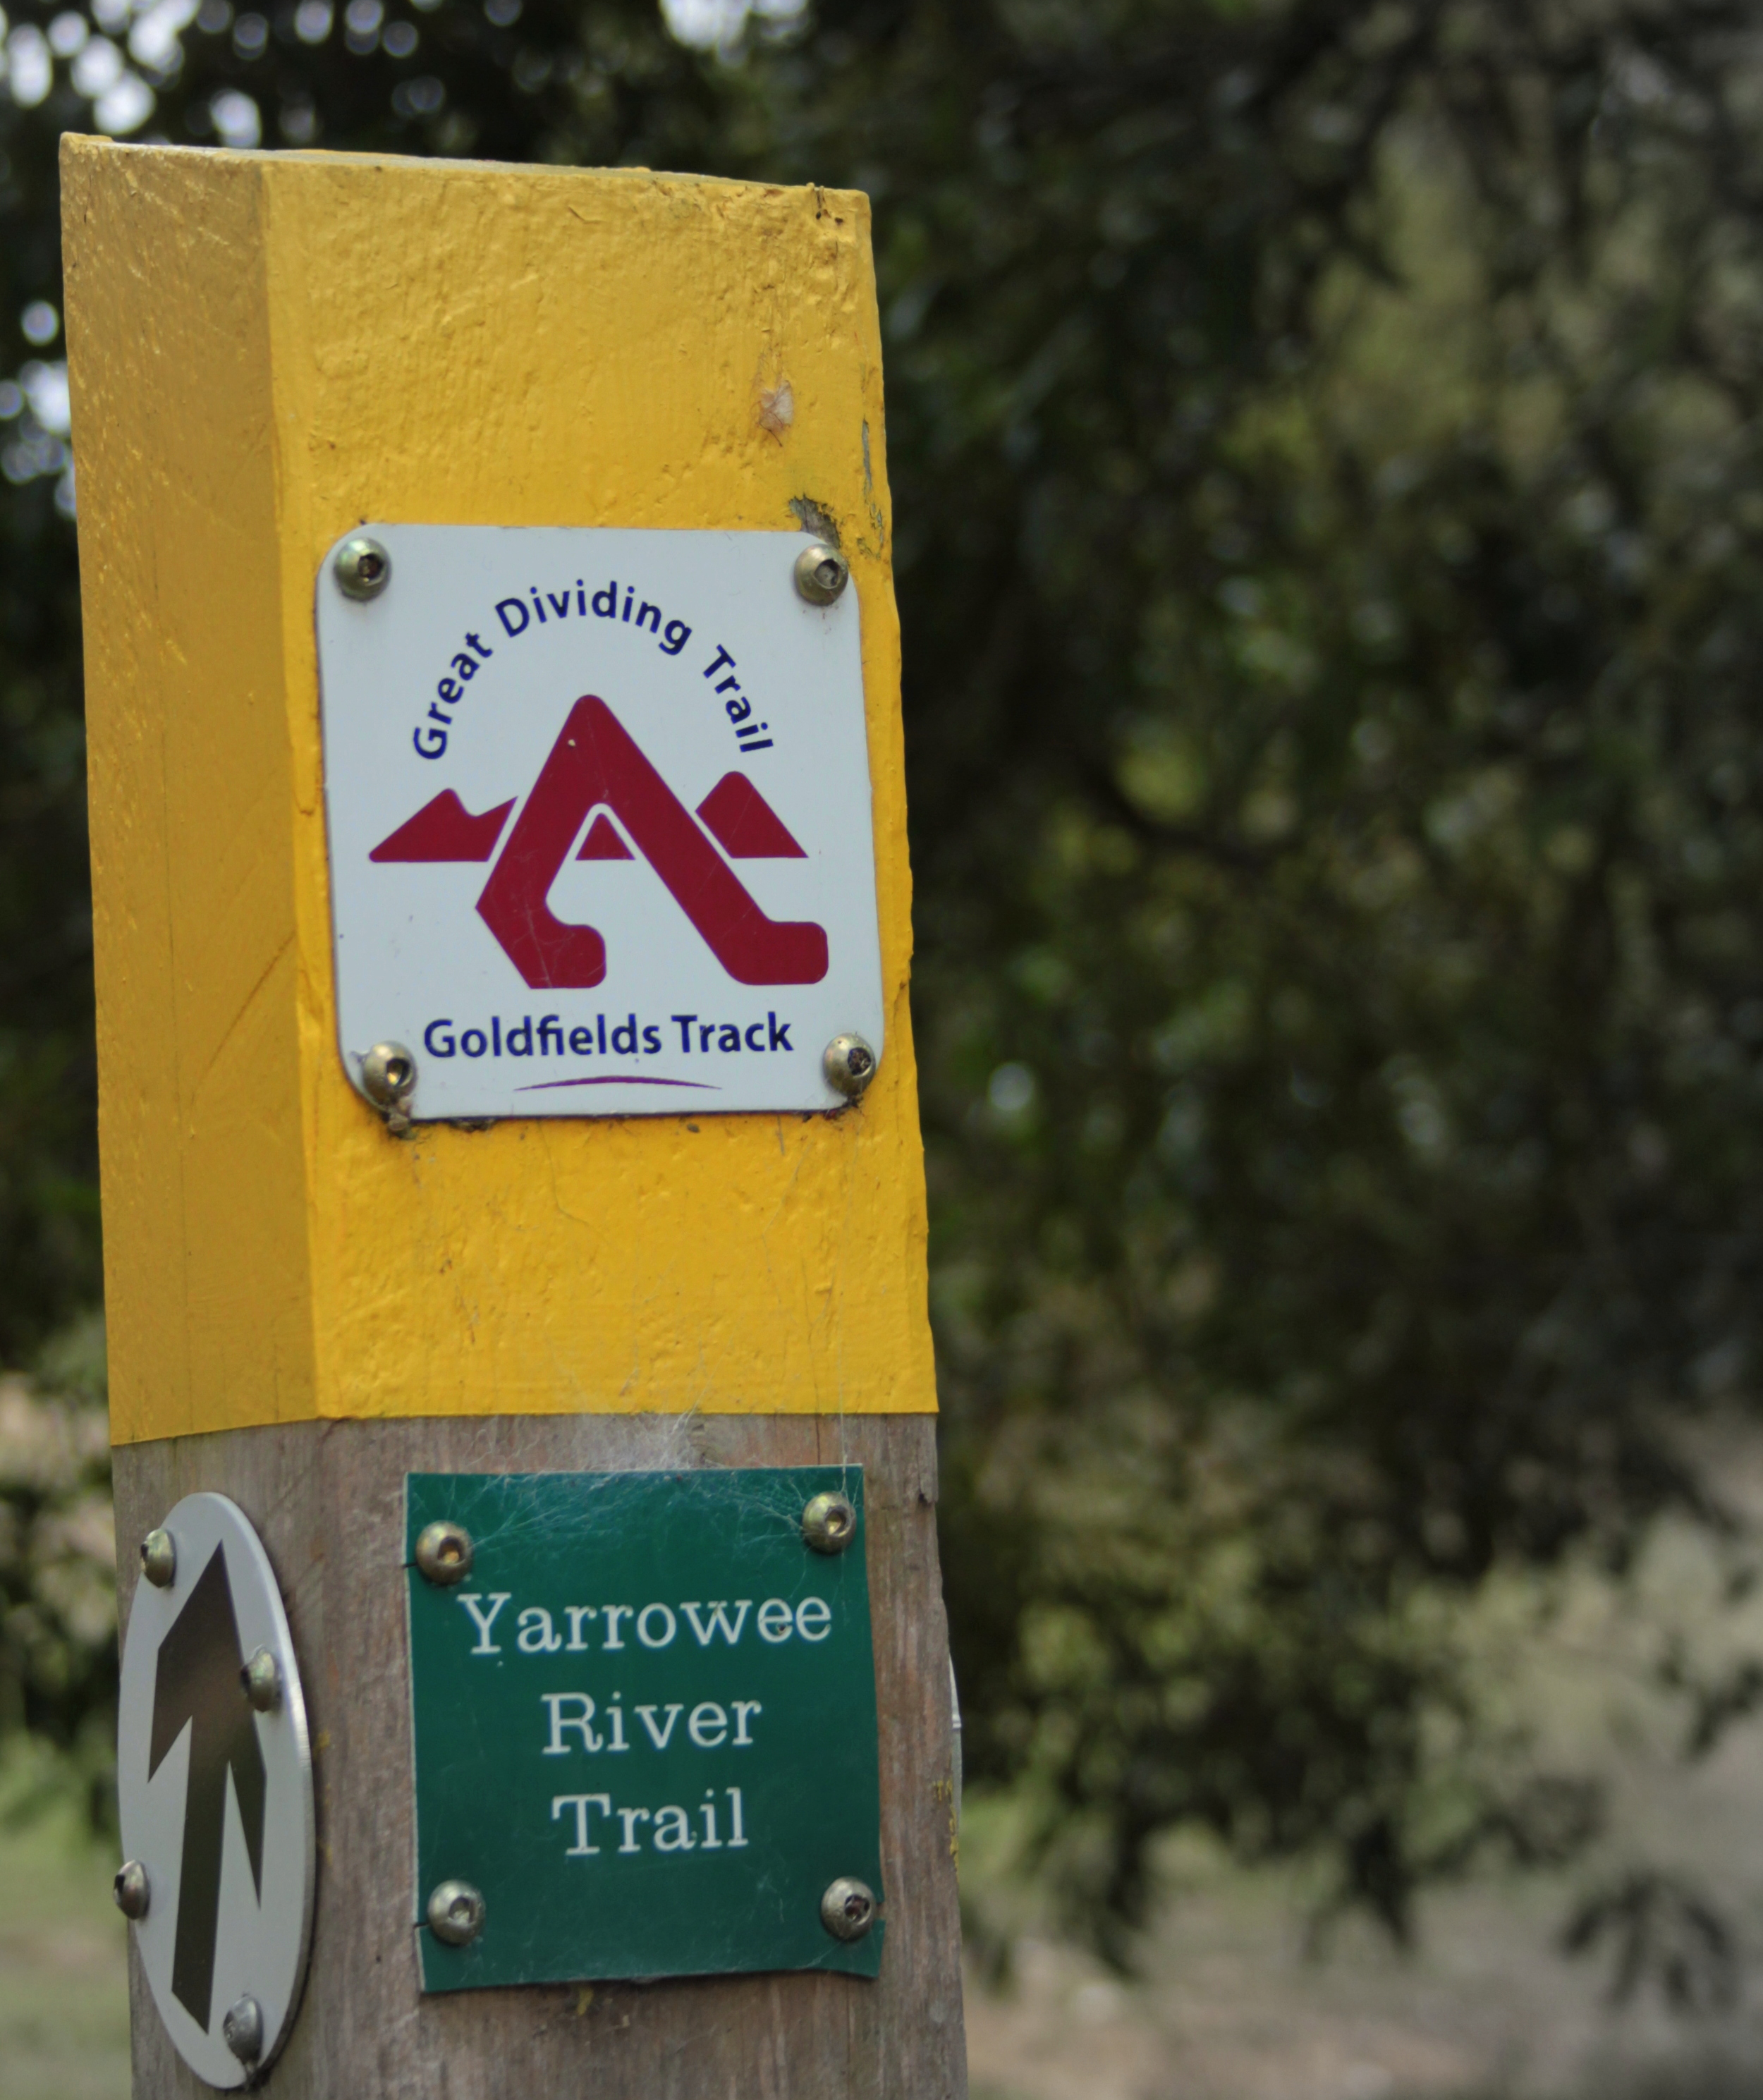 And we're off. Our third stretch of the Yarrowee River Trail.